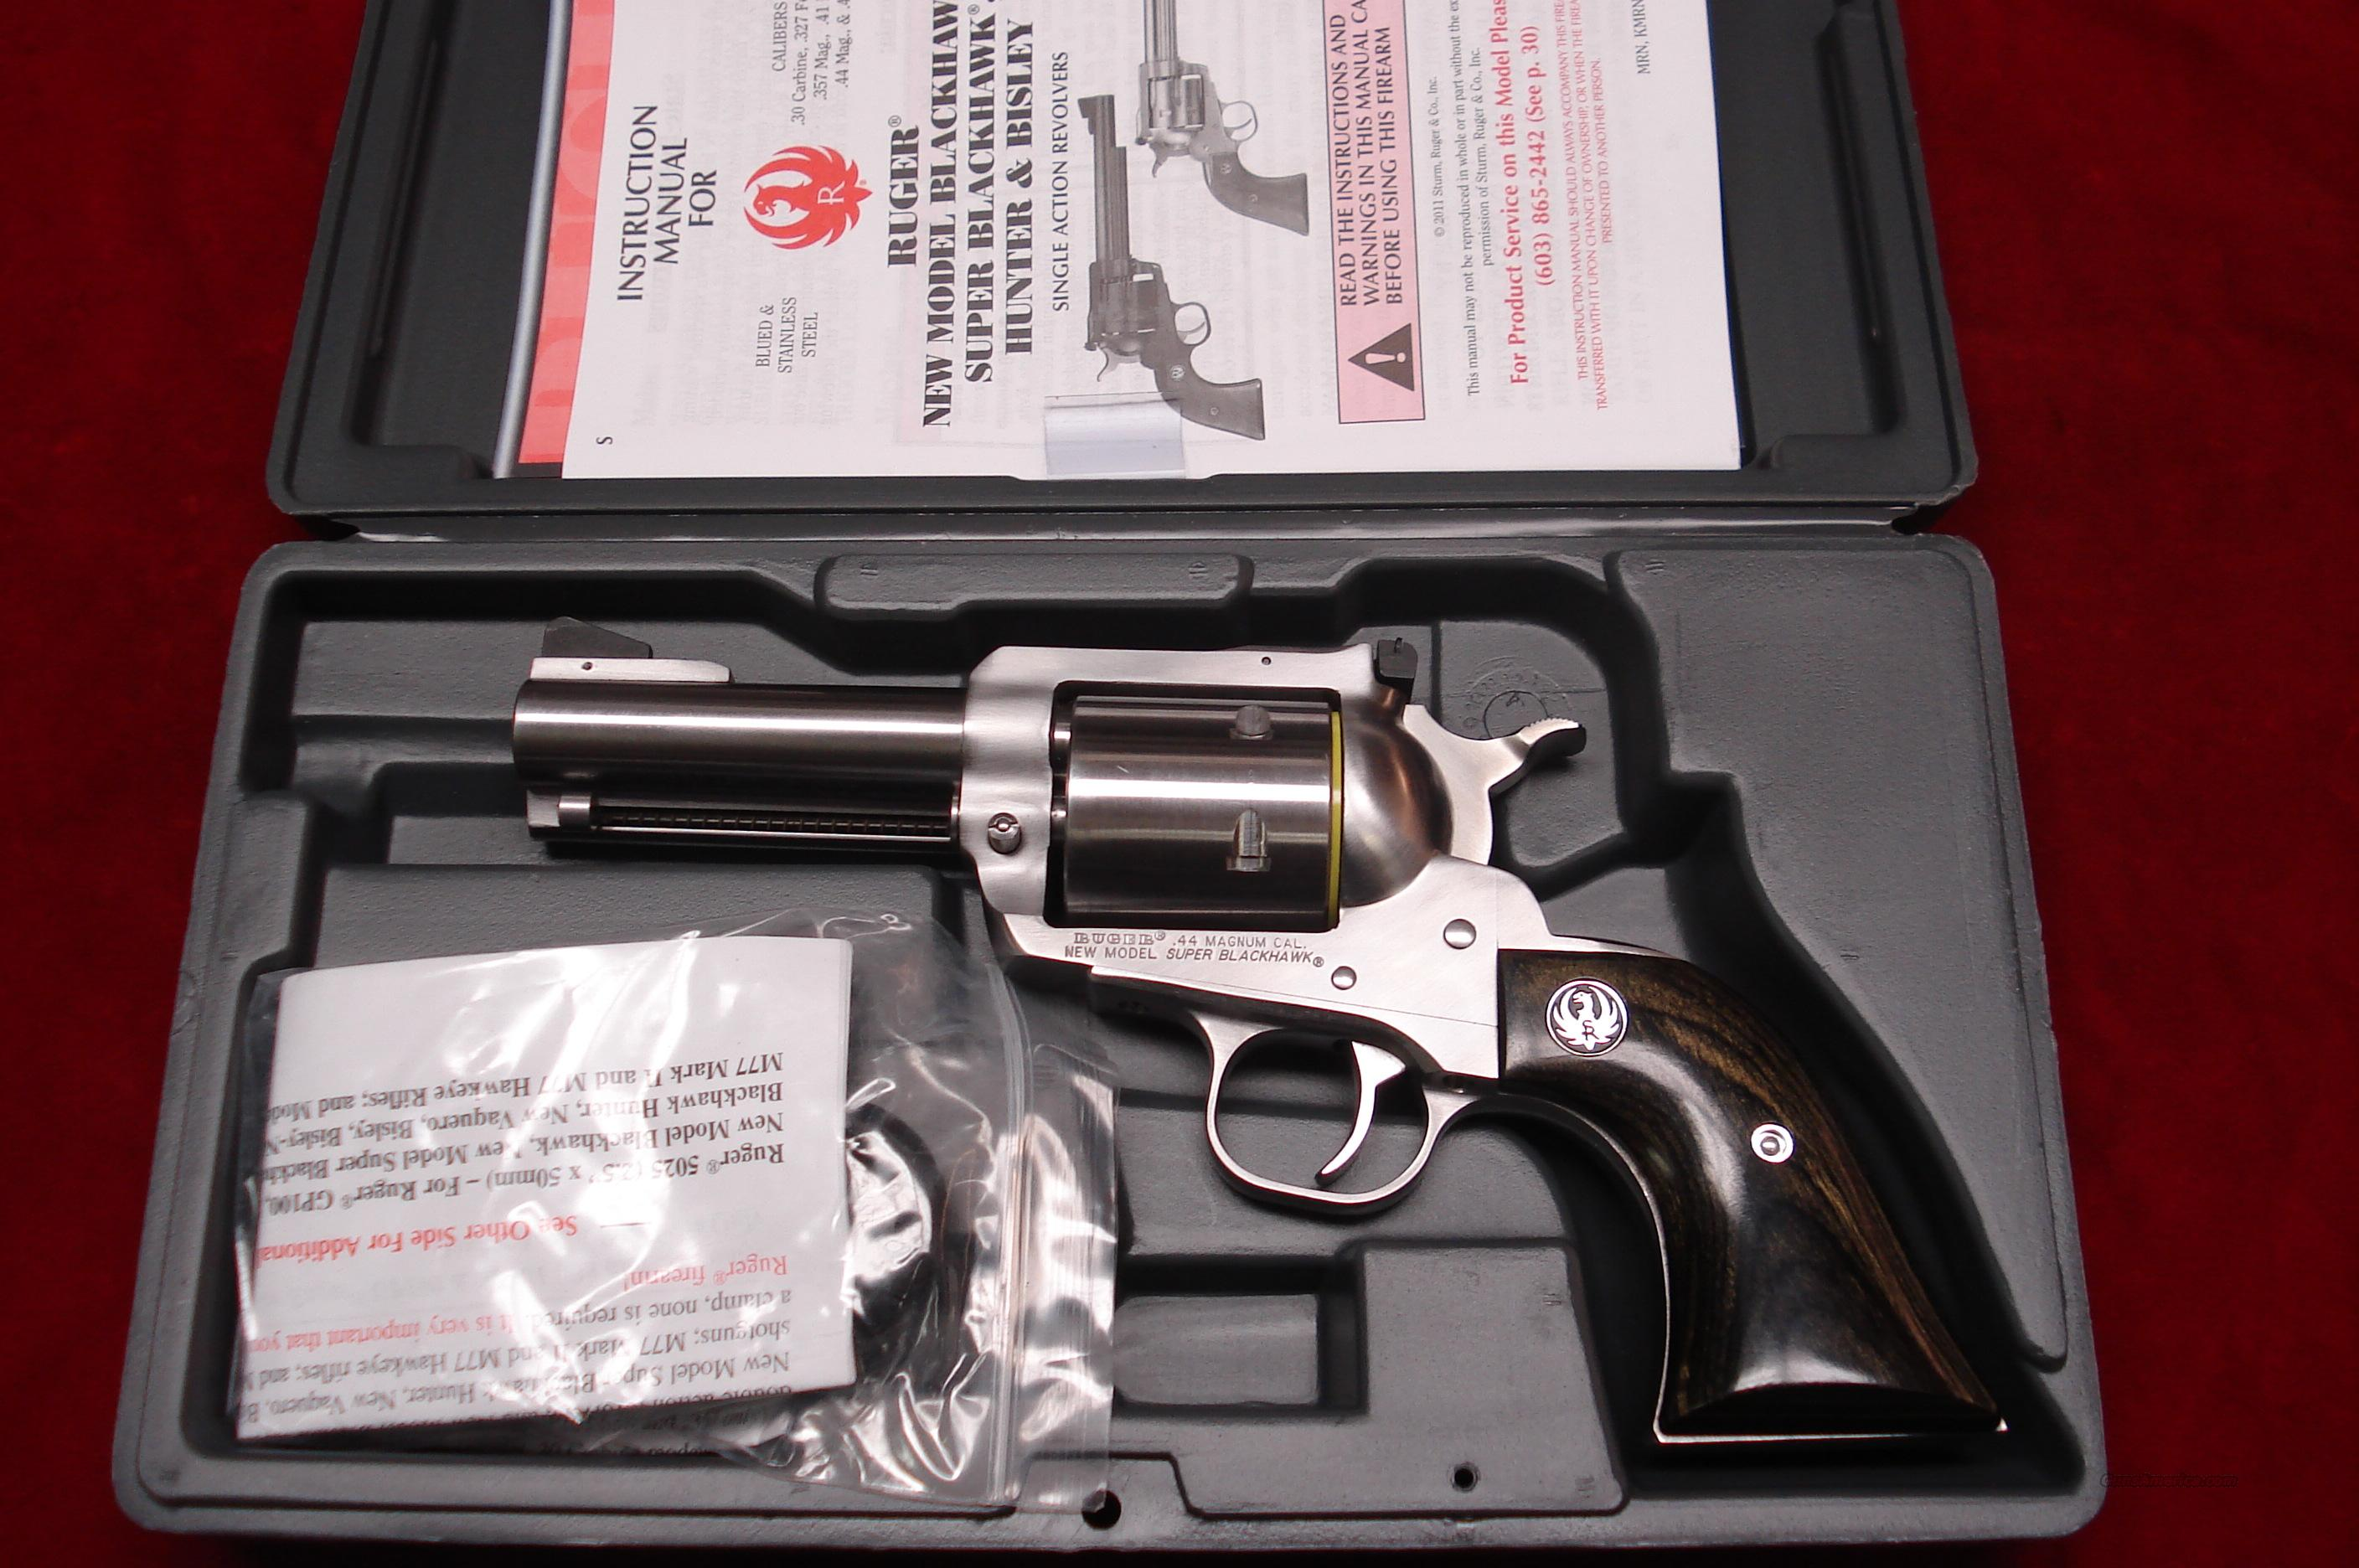 "RUGER SUPER BLACKHAWK 44MAG 3.75"" STAINLESS NEW (KS-43N)  Guns > Pistols > Ruger Single Action Revolvers > Blackhawk Type"